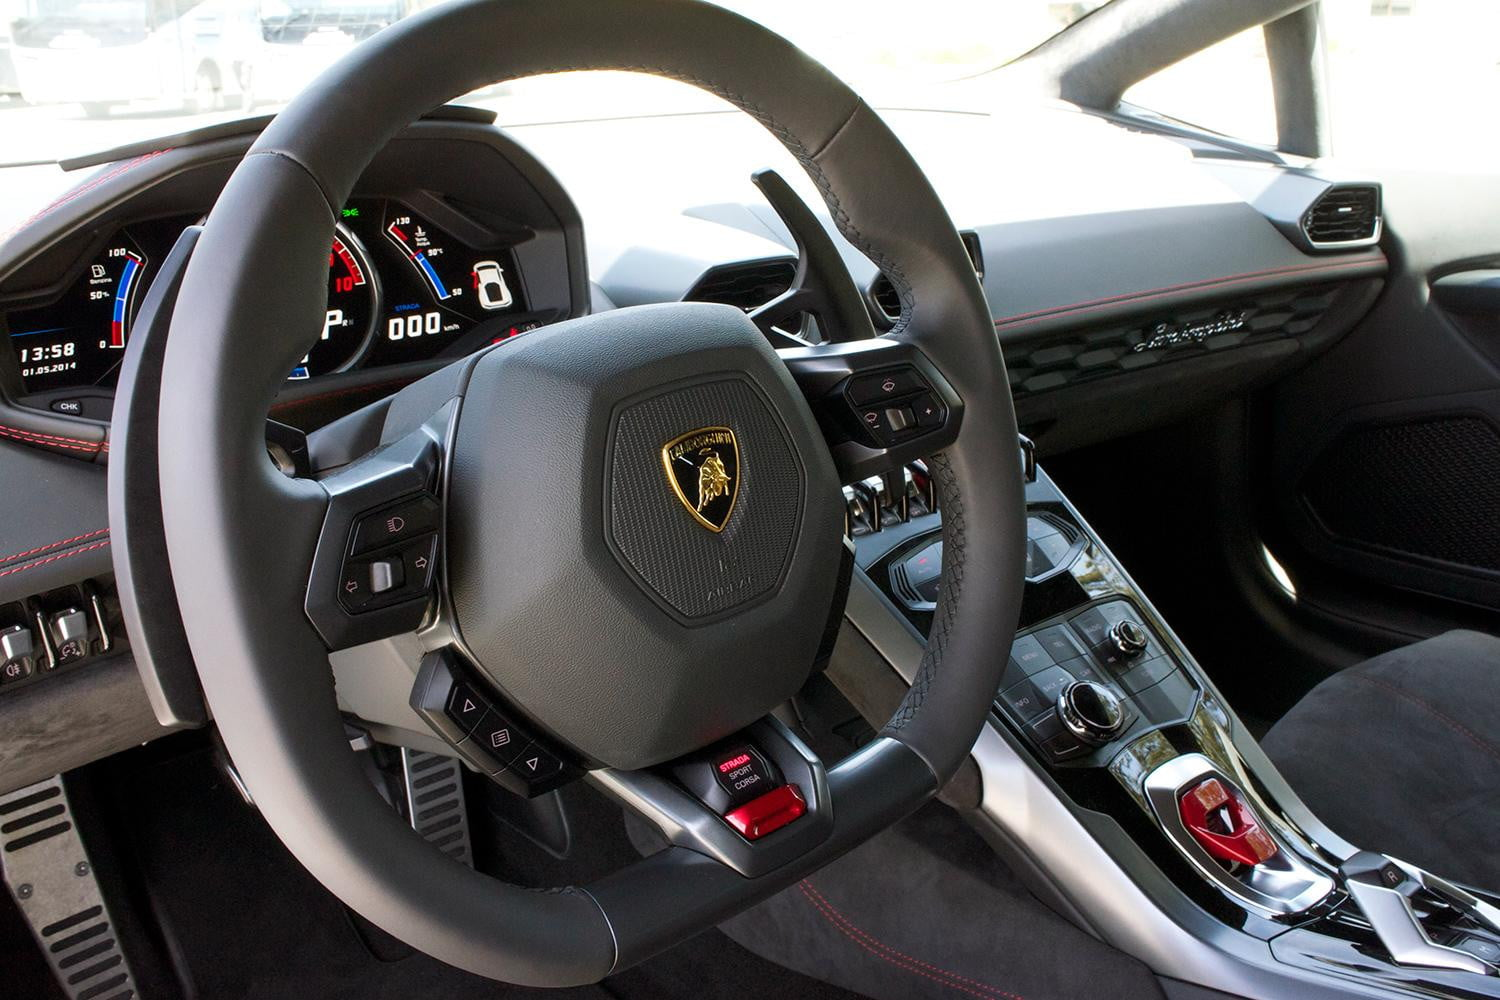 2015 lamborghini hurac n lp610 4 review digital trends. Black Bedroom Furniture Sets. Home Design Ideas